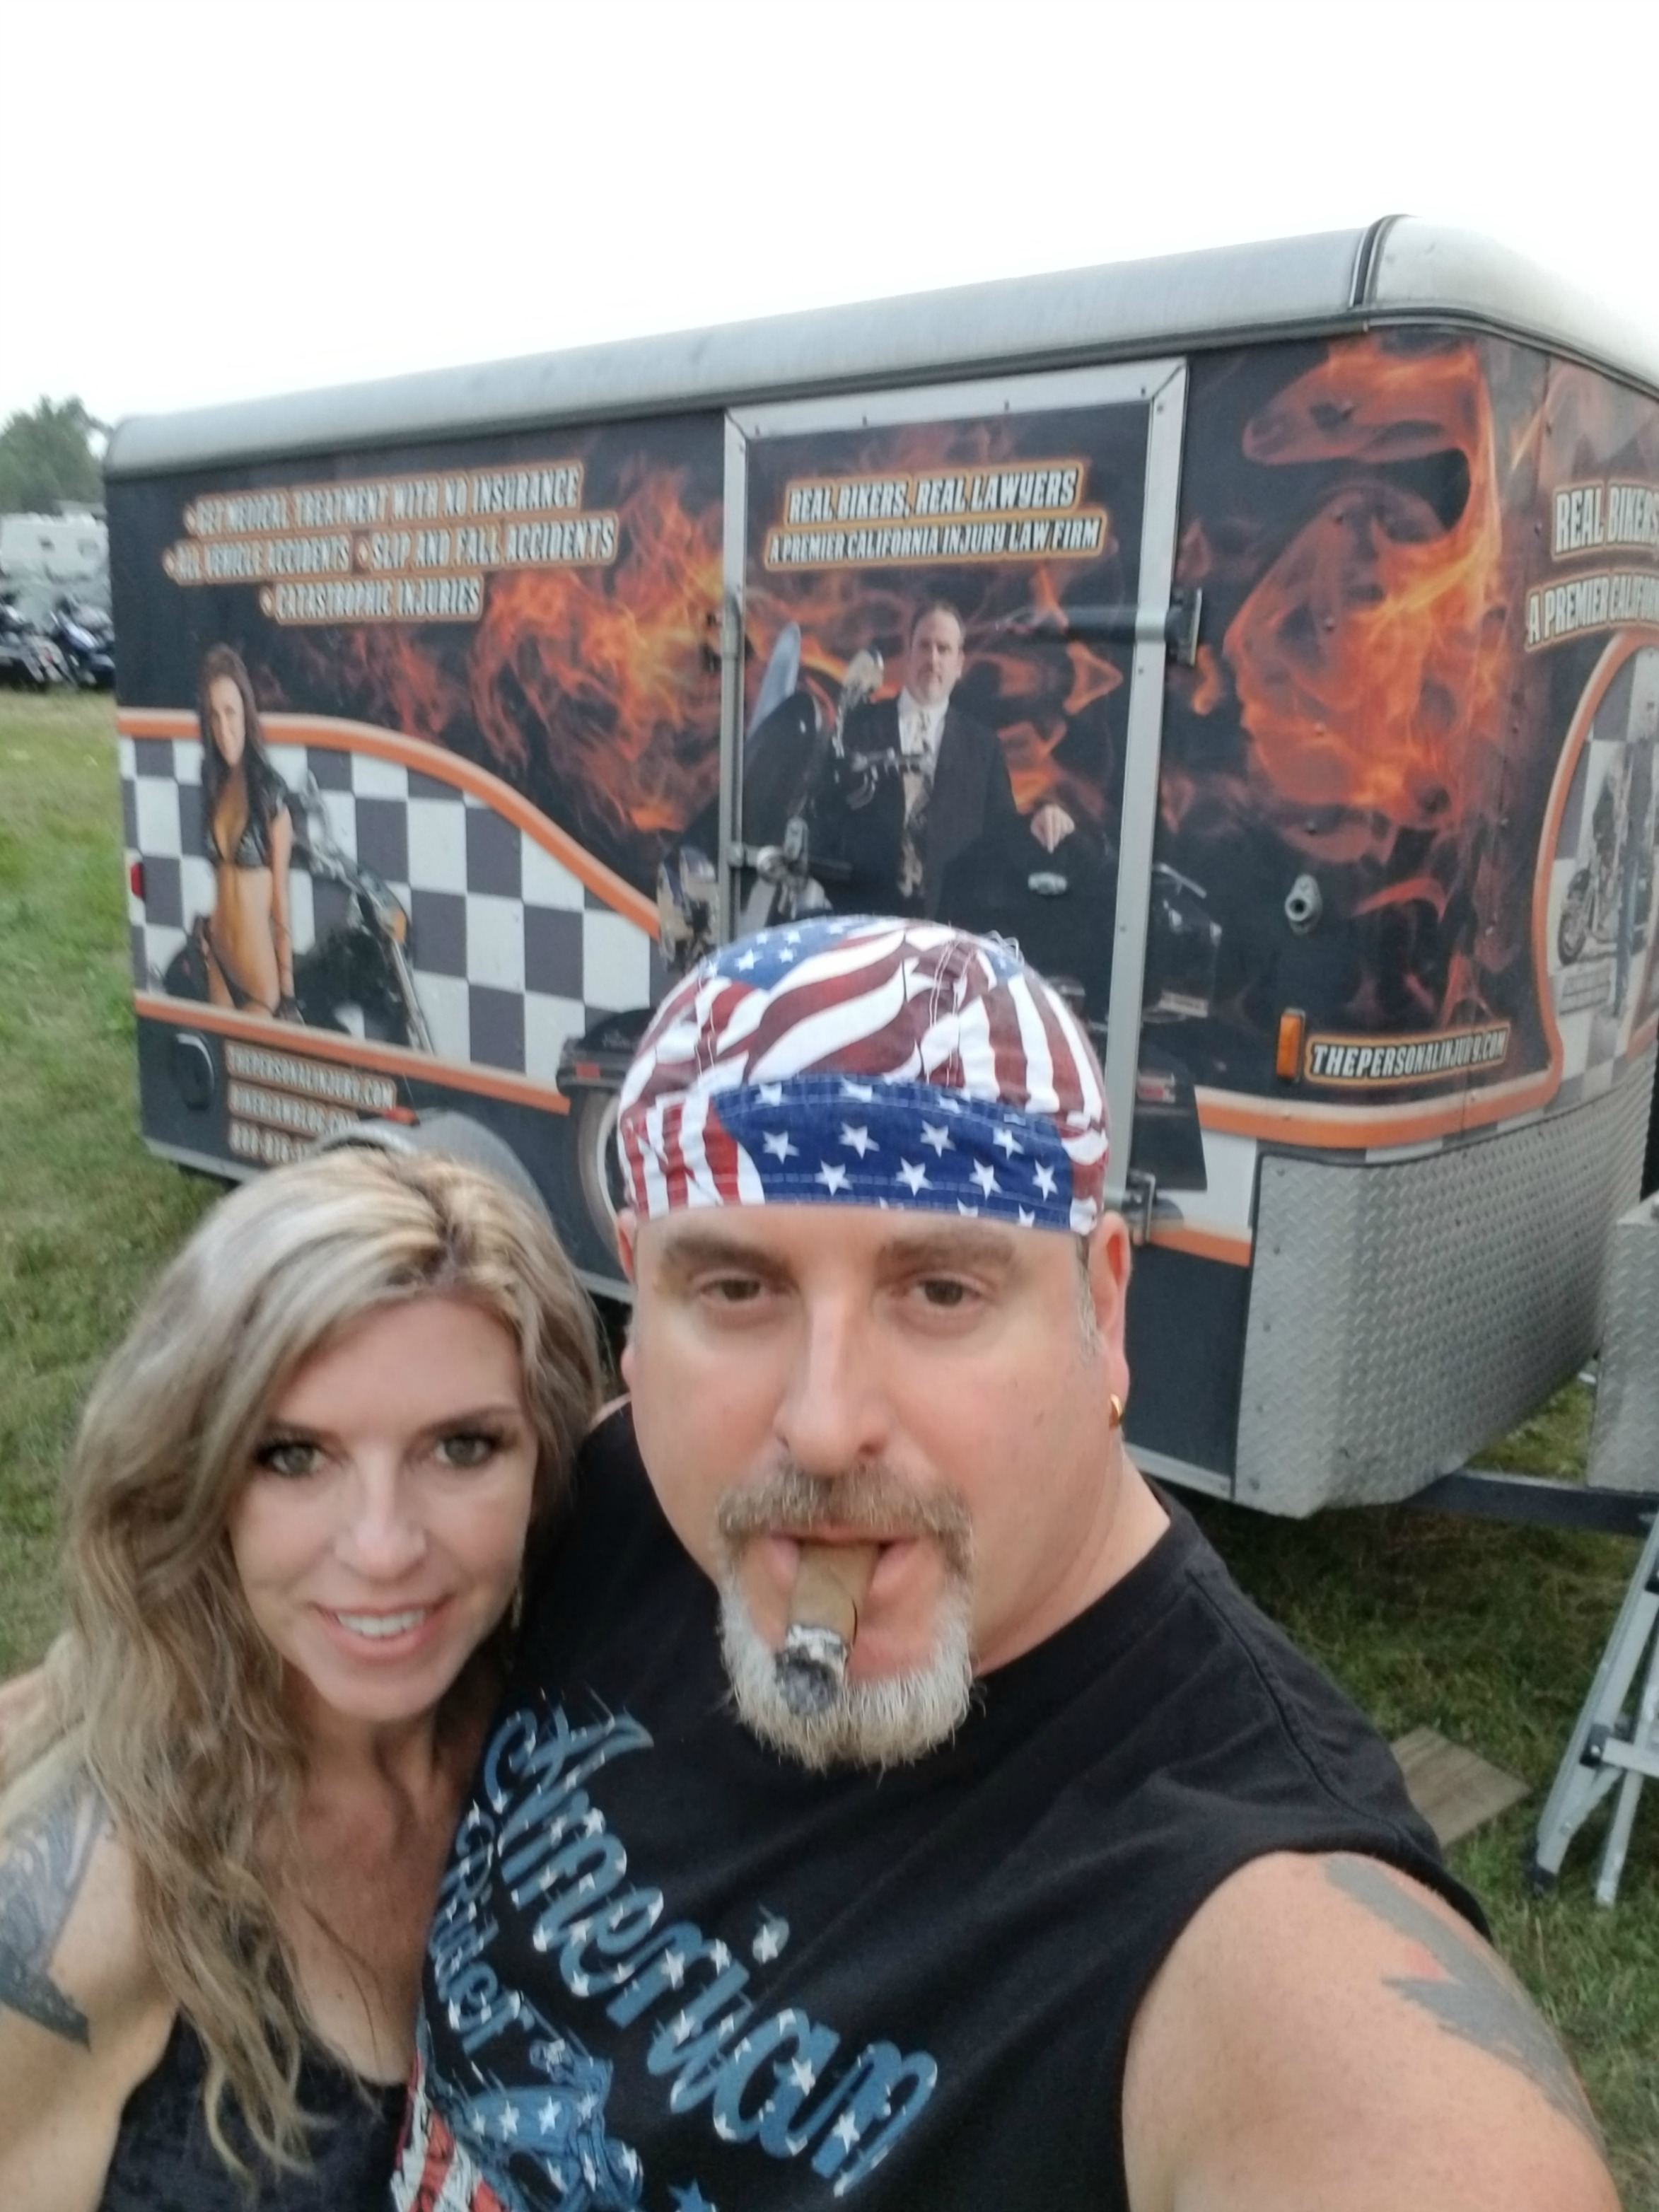 The Sturgis motorcycle Rally 2018, a great time.